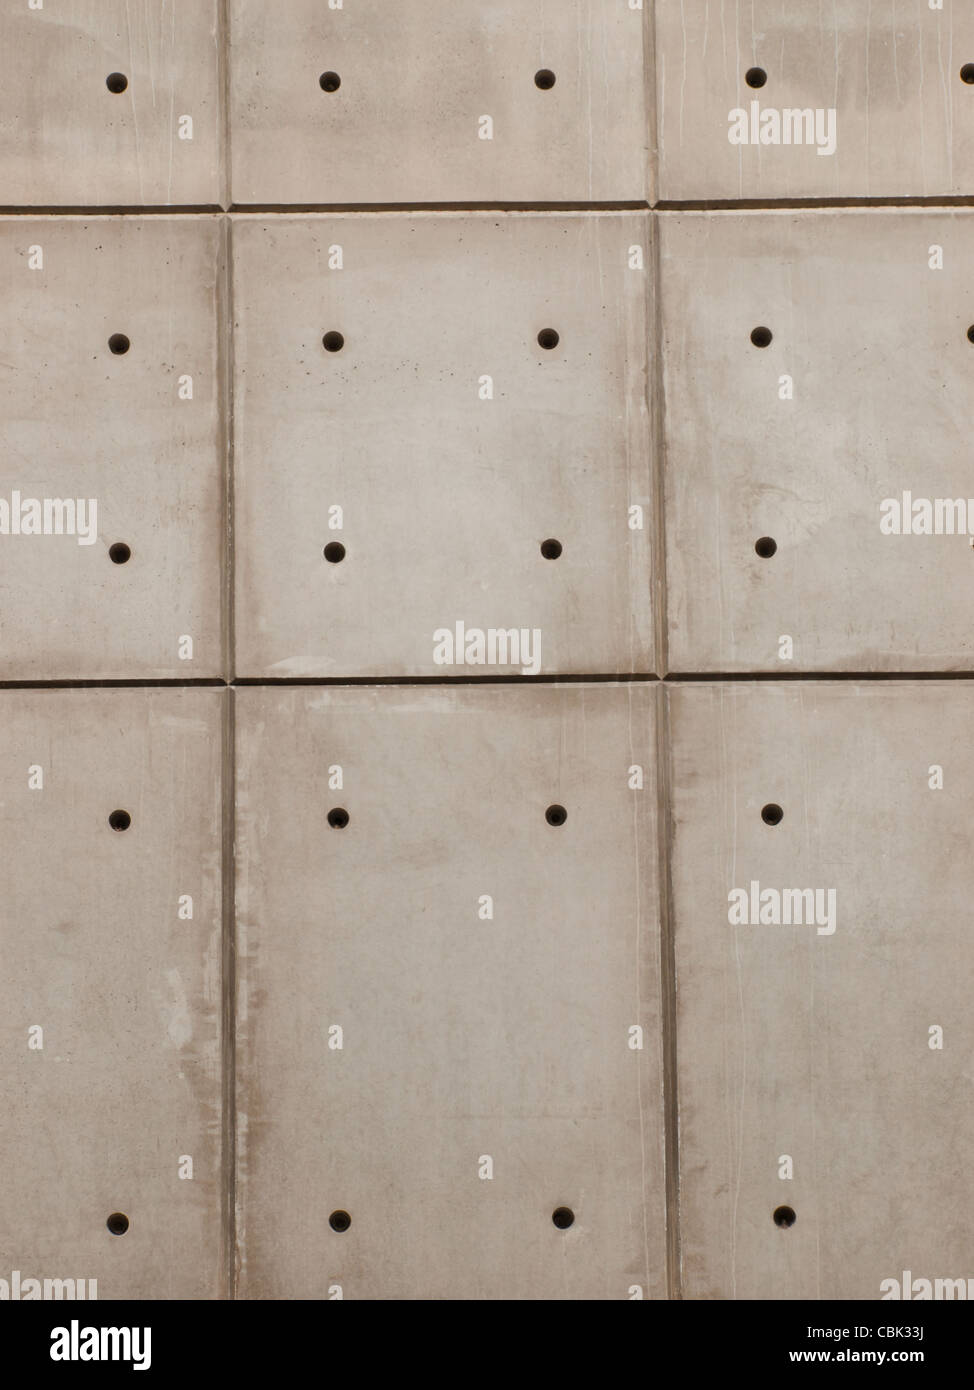 Raw Concrete Wall Background With Formwork Lines And Tie